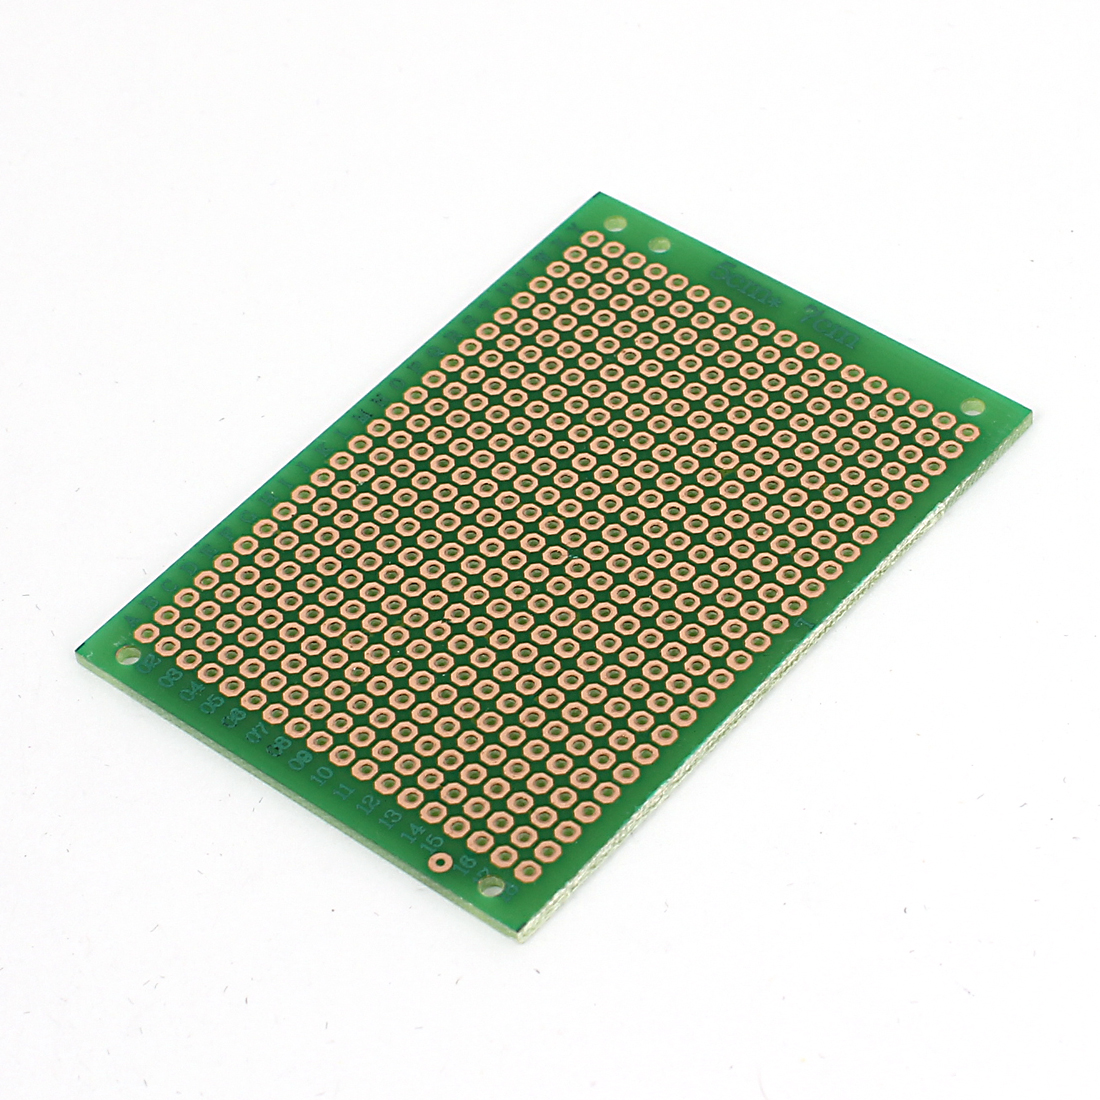 Prototype Paper PCB Universal Experiment Matrix Panel Circuit Board 5x7cm Green